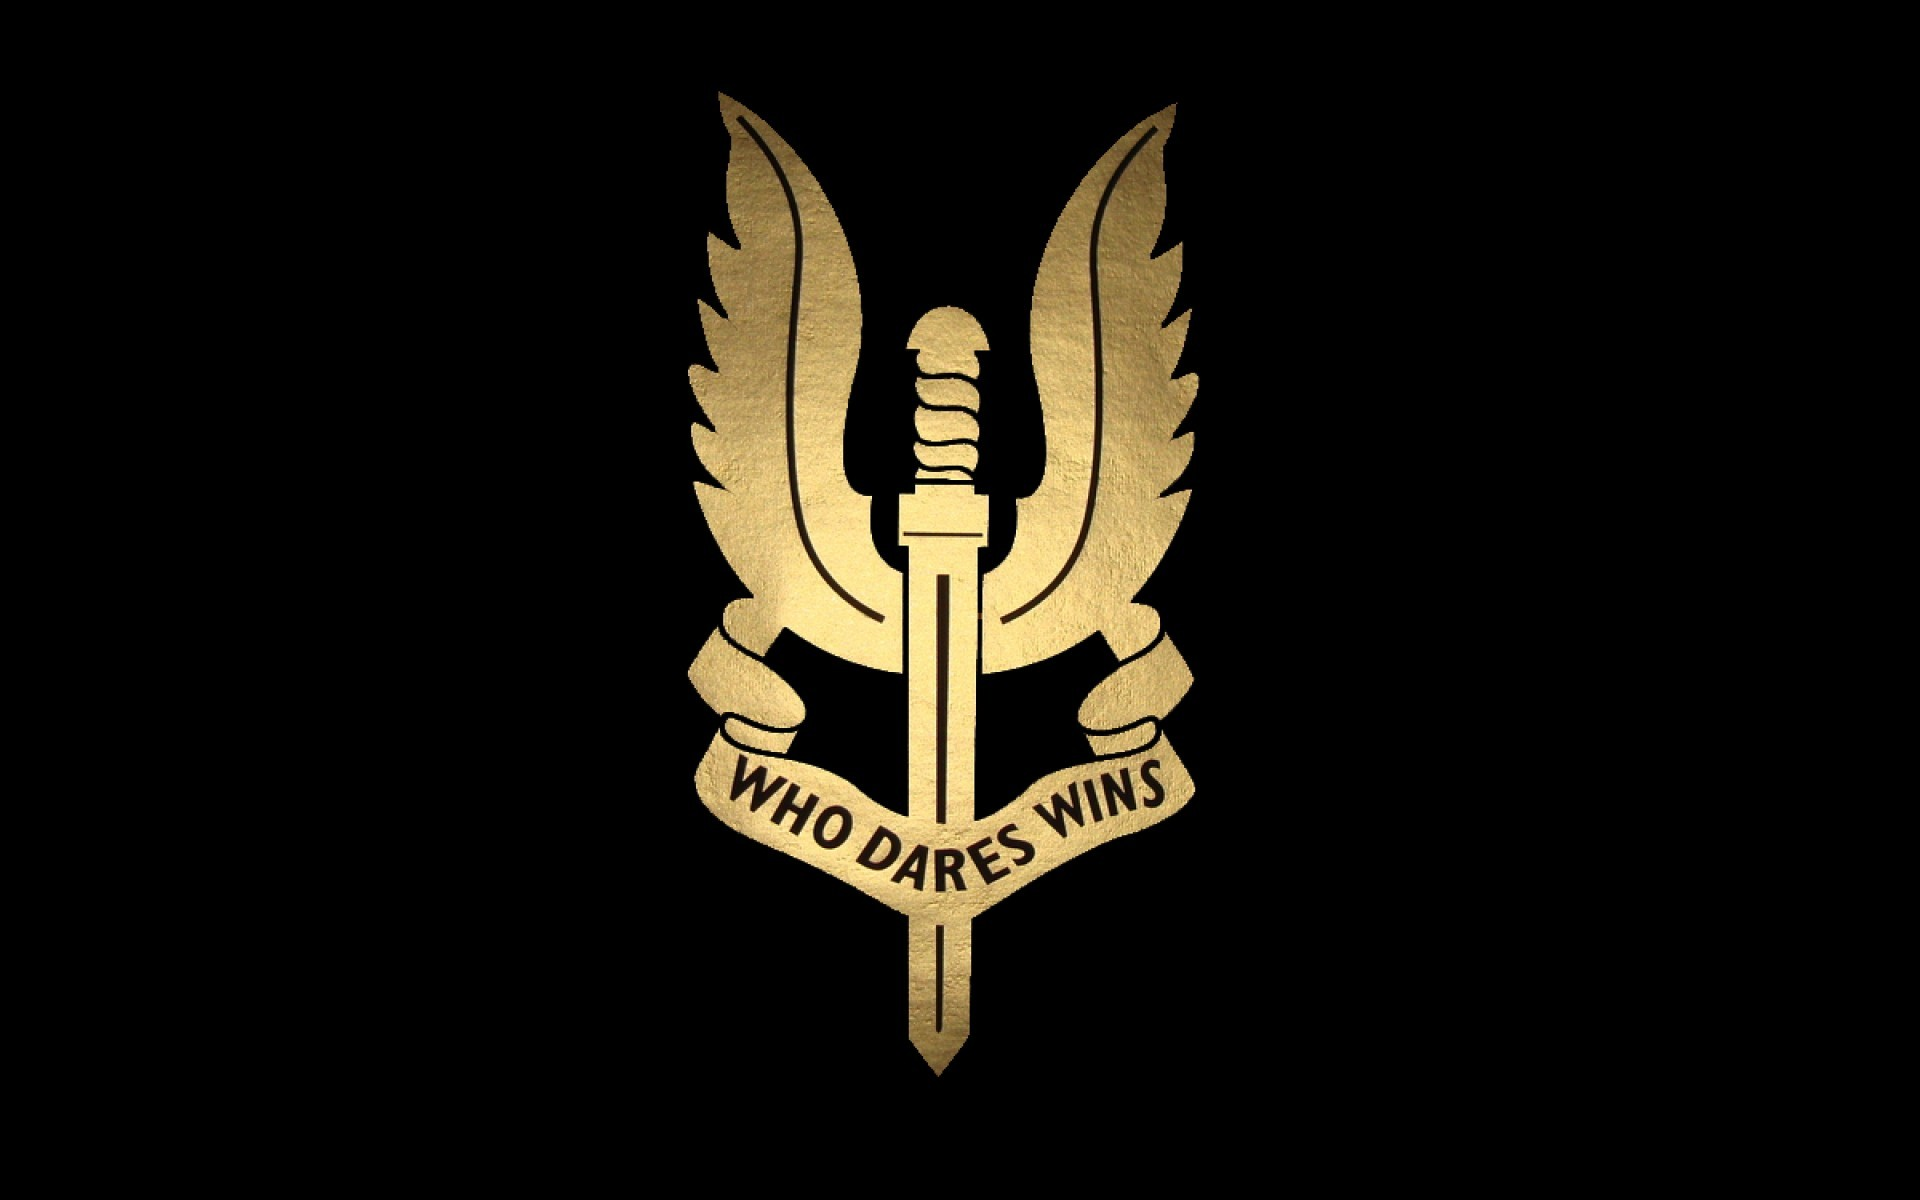 10 Latest United States Army Wallpaper Full Hd 1080p For: Air Force Logo Wallpaper (56+ Pictures